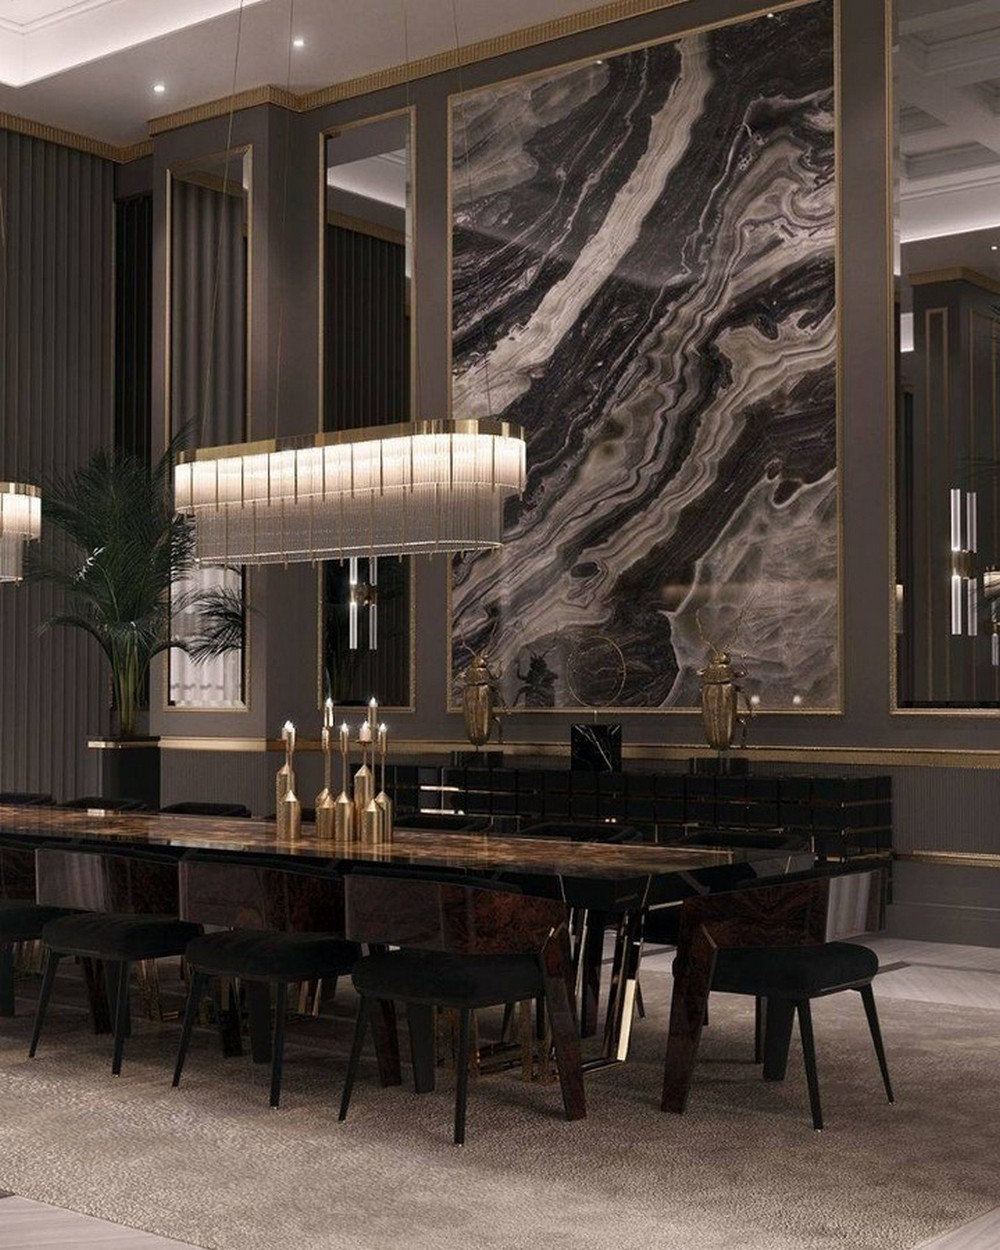 How To Use Black To Create A Thrilling Luxury Dining Room luxury dining room How To Use Black To Create A Thrilling Luxury Dining Room 147159338 266677618392080 6821030353506693724 n